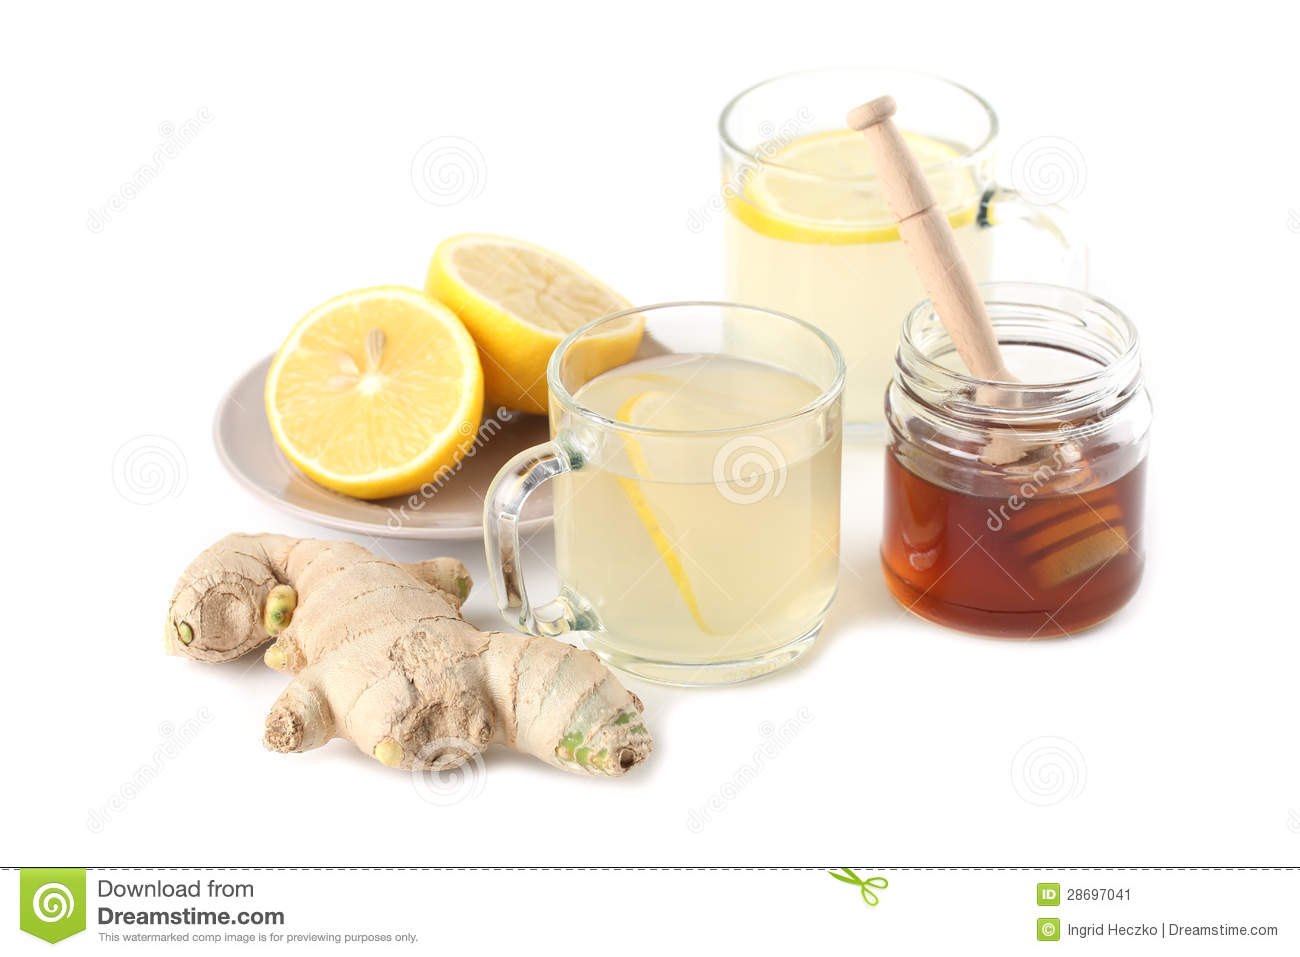 Ginger Tea With Honey And Lemon Stock Image - Image: 28697041